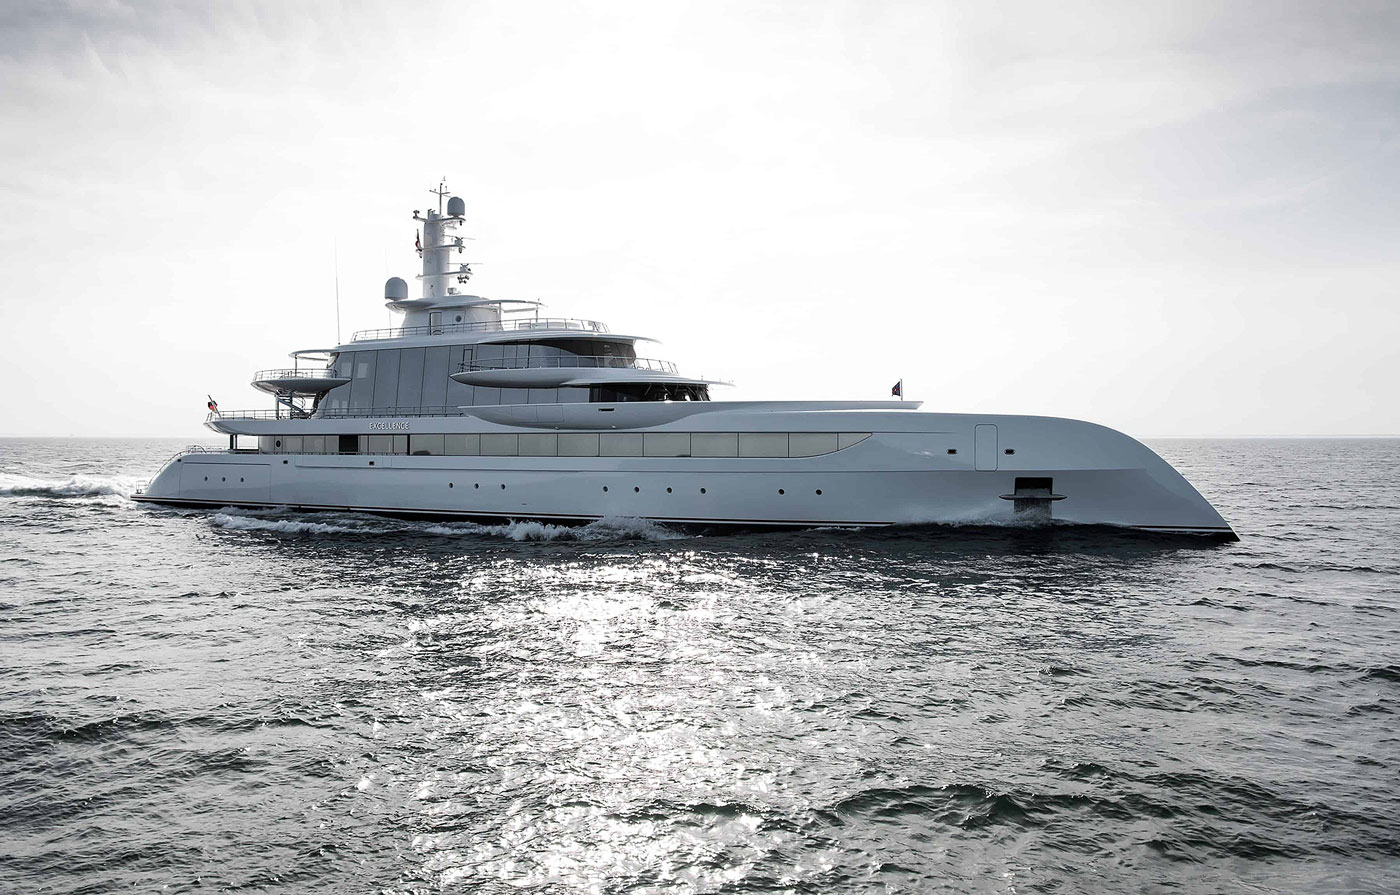 M/Y EXCELLENCE, 79.95m Motor Yacht by ABEKING & RASMUSSEN, showcased at Monaco Yacht Show 2019 | FINEST LIVING | Finest Residences